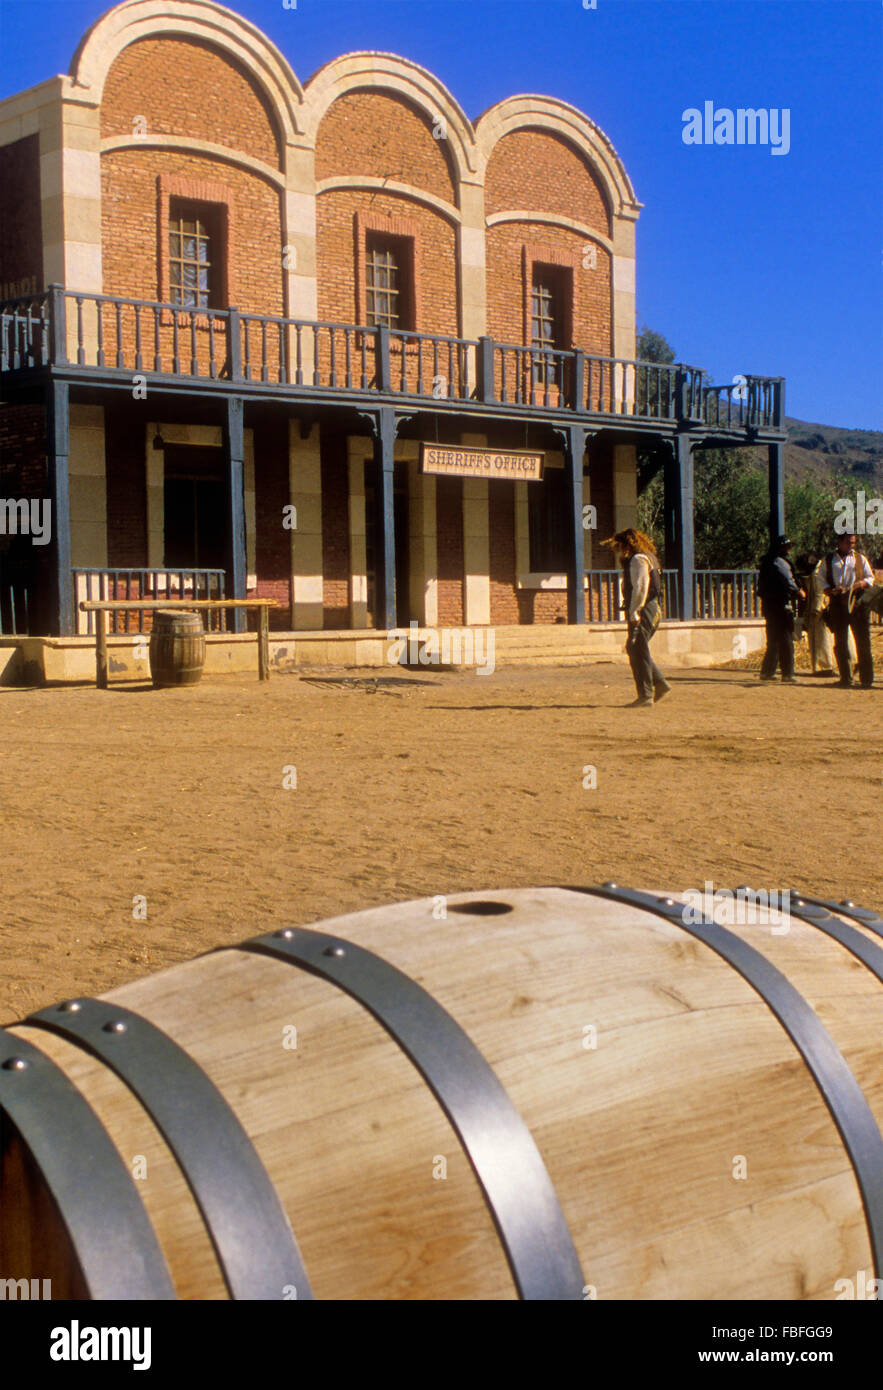 Desert of Tabernas.Film set of at Mini Hollywood. Almeria province, Andalucia, Spain Stock Photo